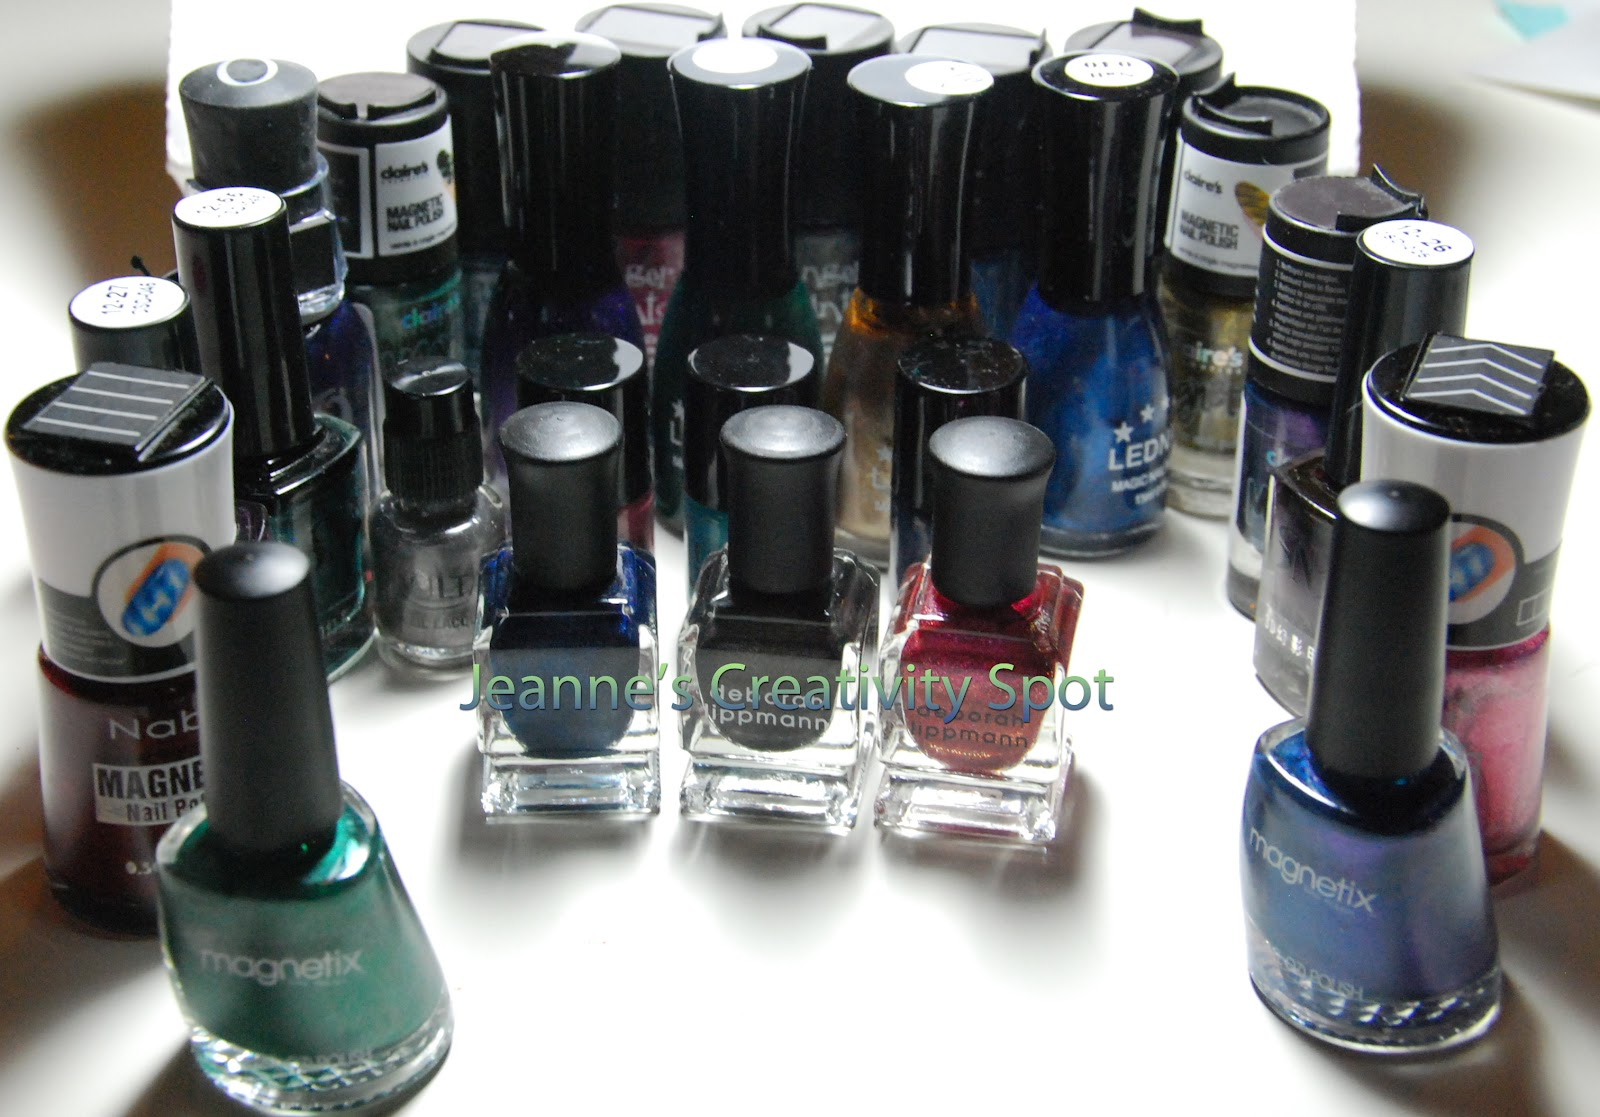 Jeannes Creativity Spot Magnetic Polishes You Decide Nabi Duo Concealer All Have To Do Is Respond In The Comments What Youd Like See Swatched Using Tags I Given Them Any Color With Magnet